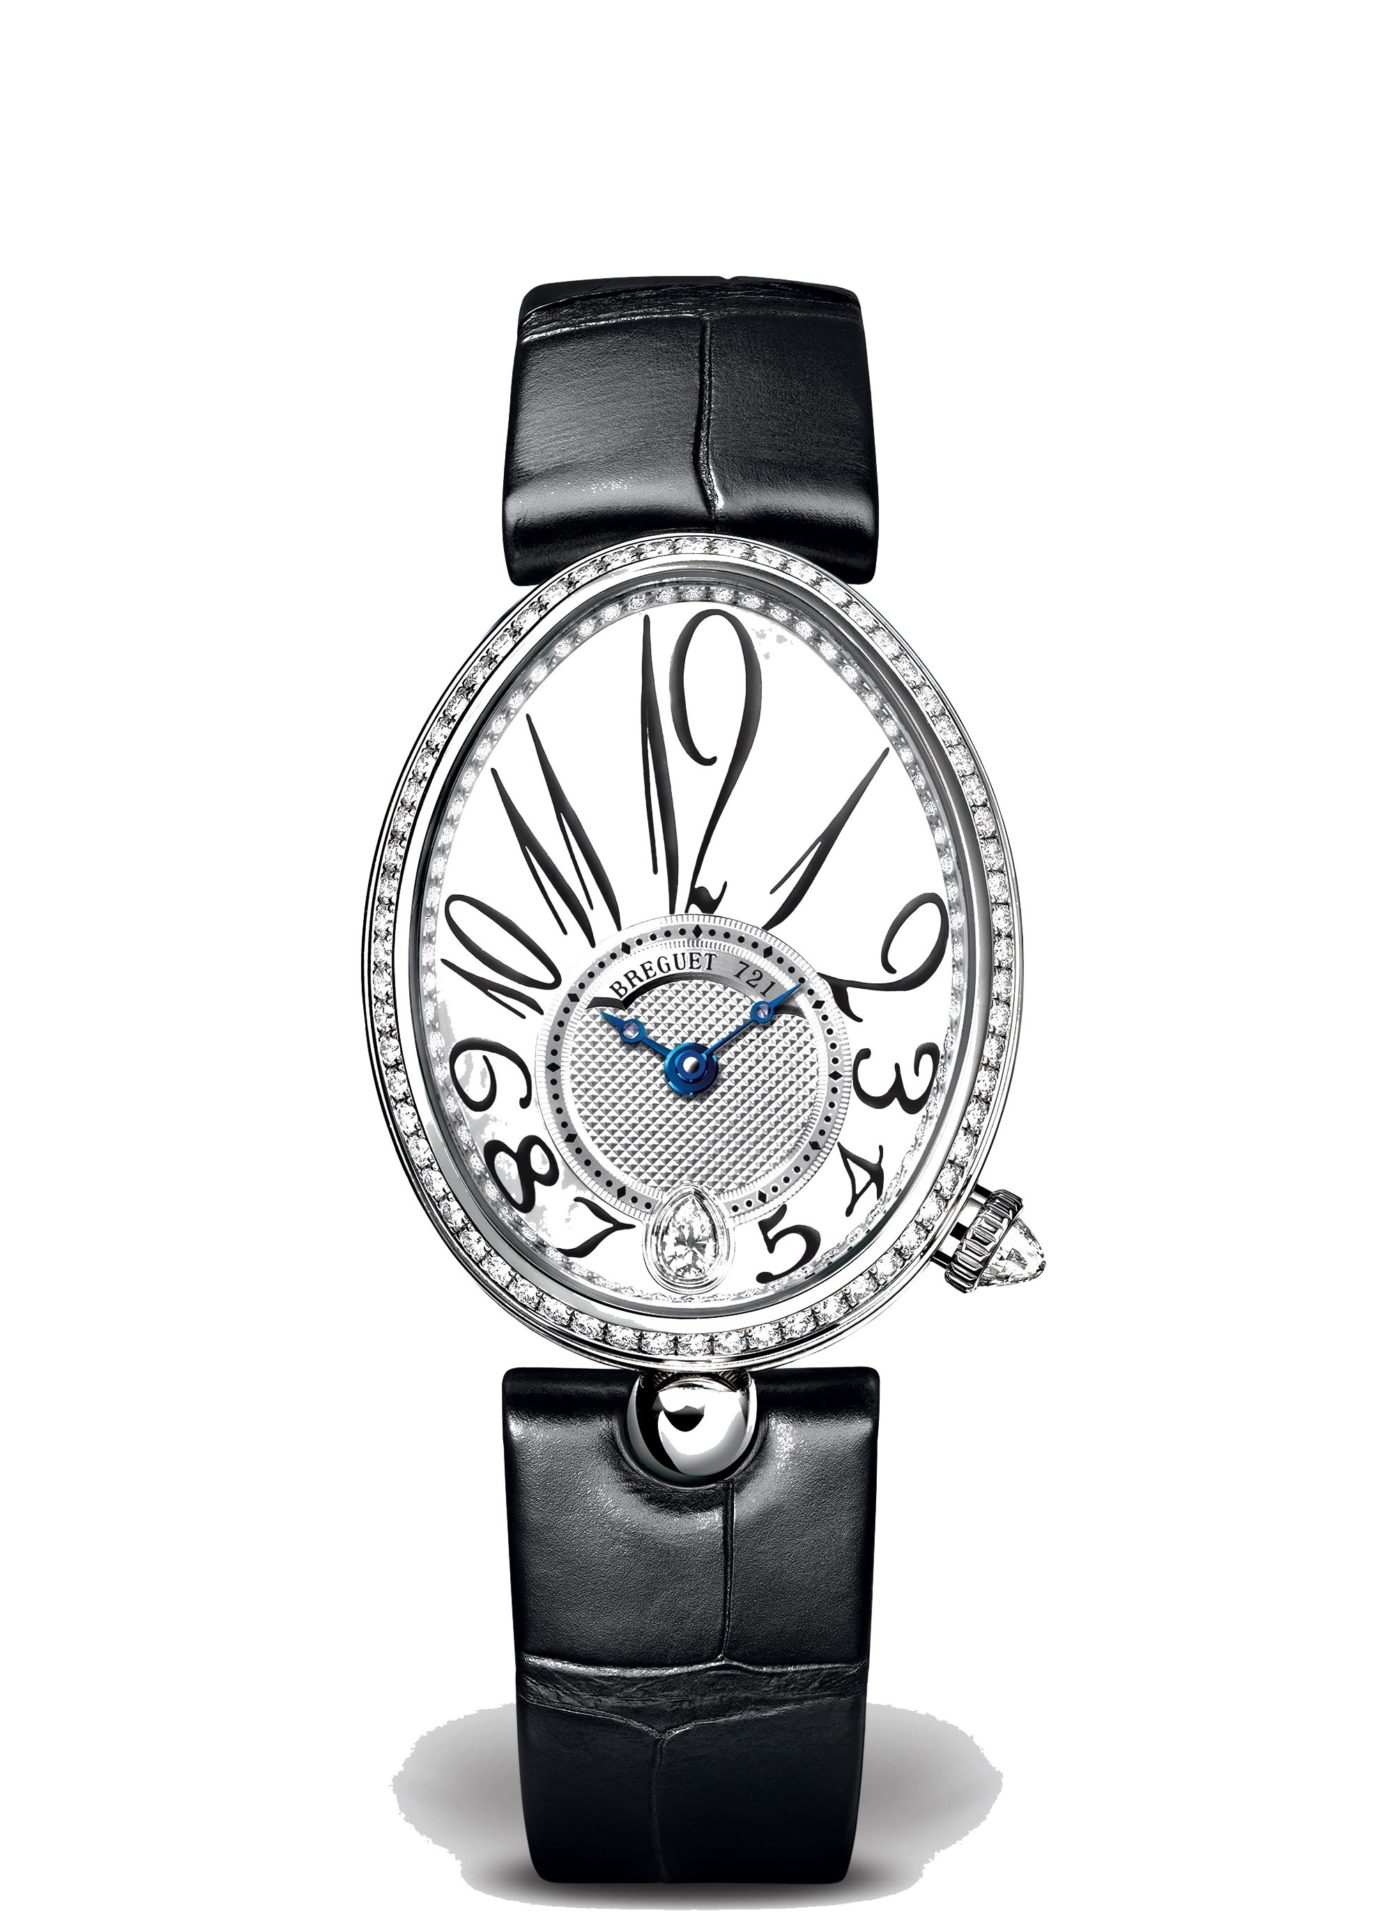 Breguet-Reine-de-Naples-8918-Hall-of-Time-8918BB-58-964D00D